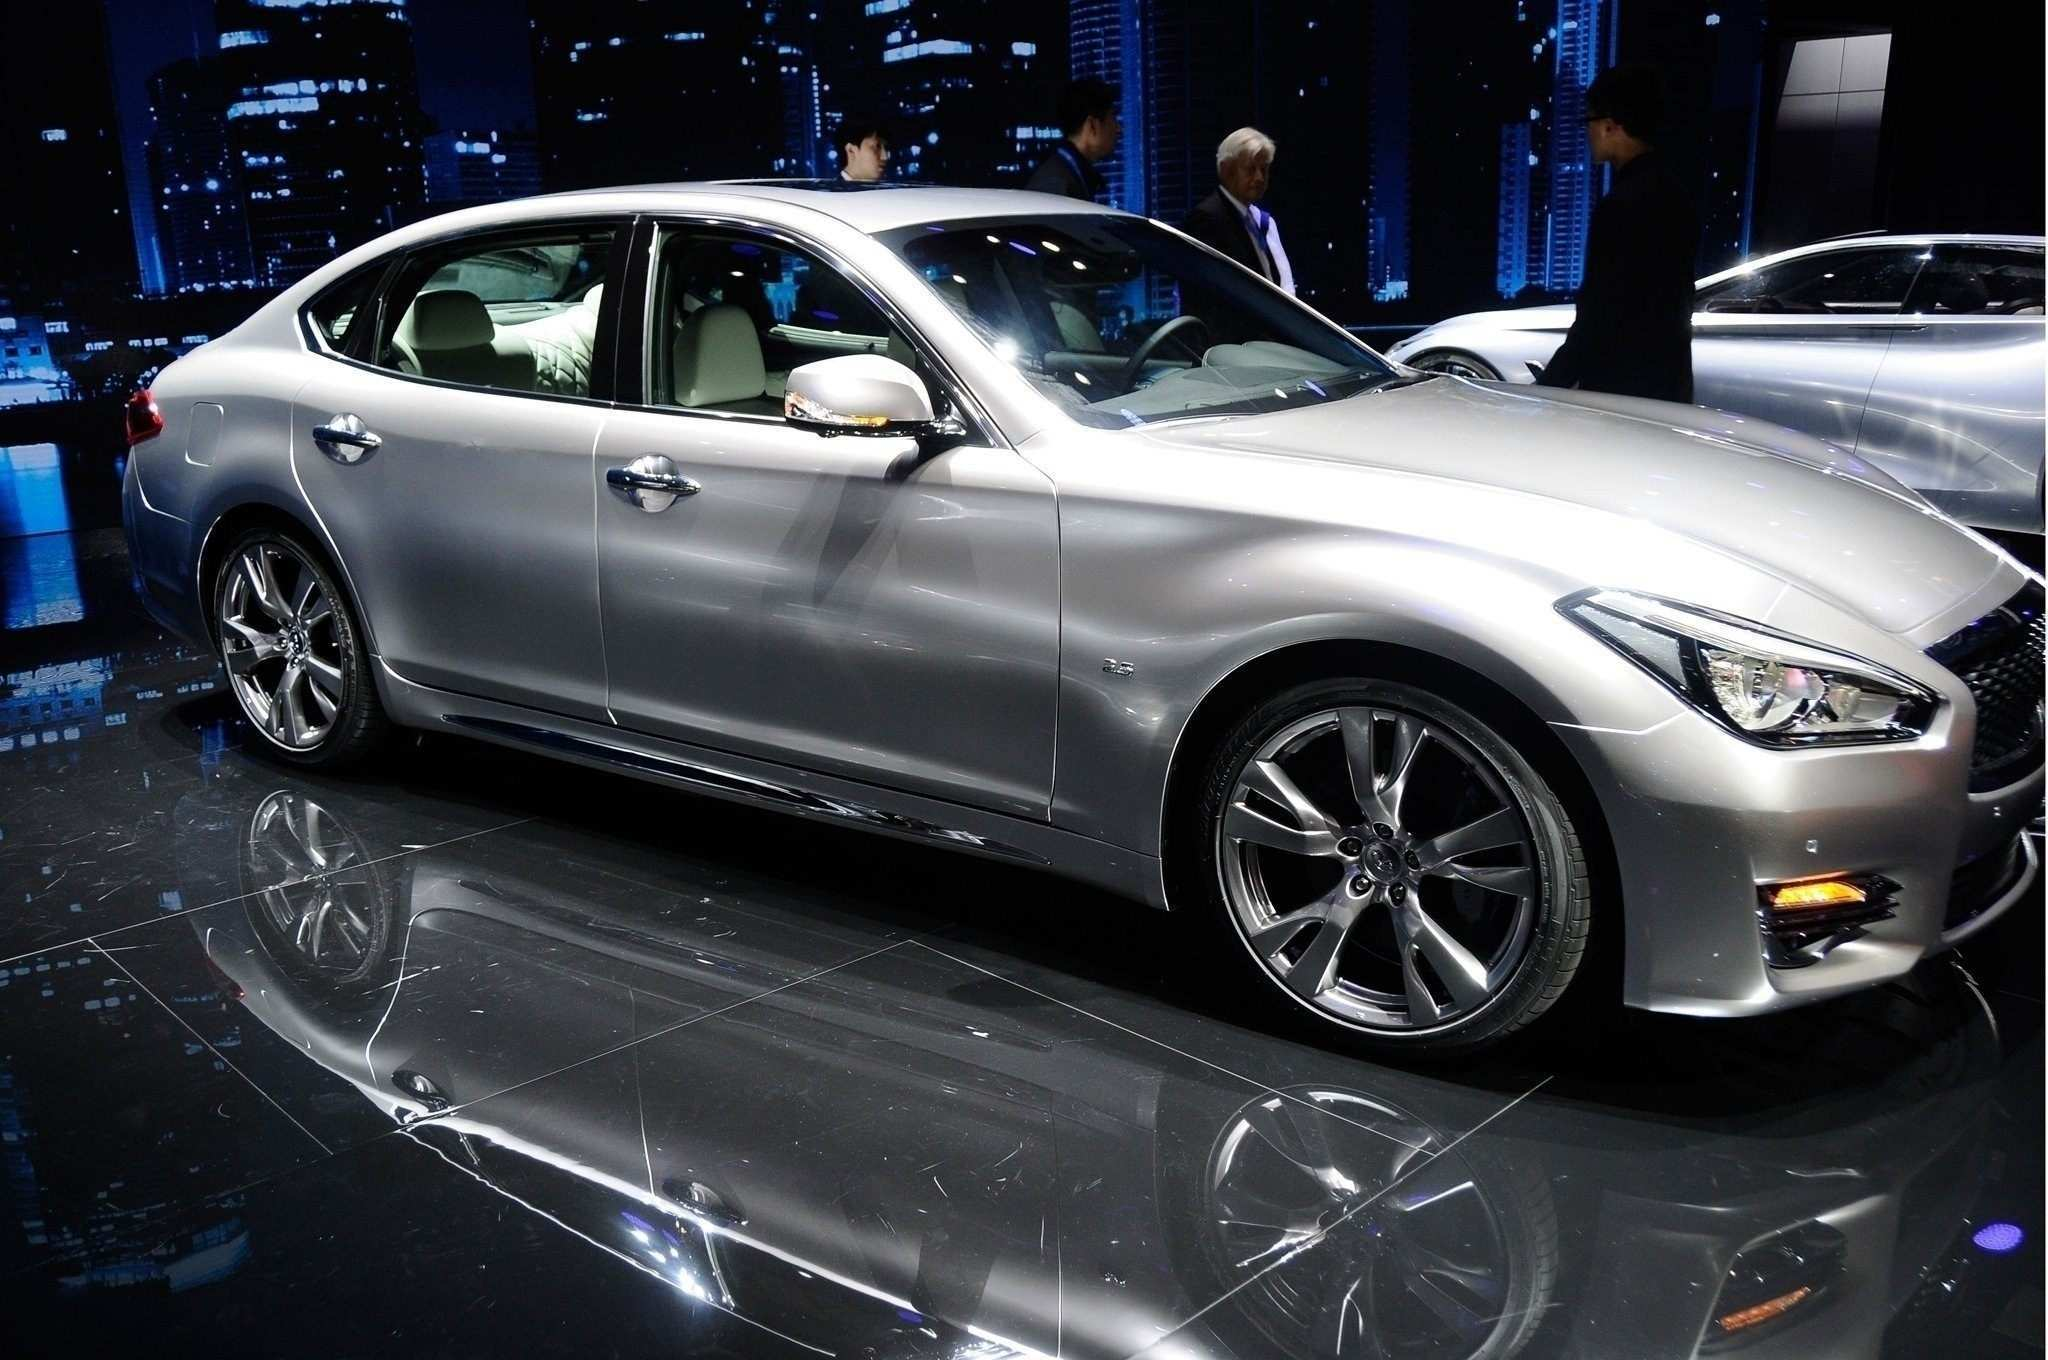 81 Best 2019 Infiniti Q70 Review Overview